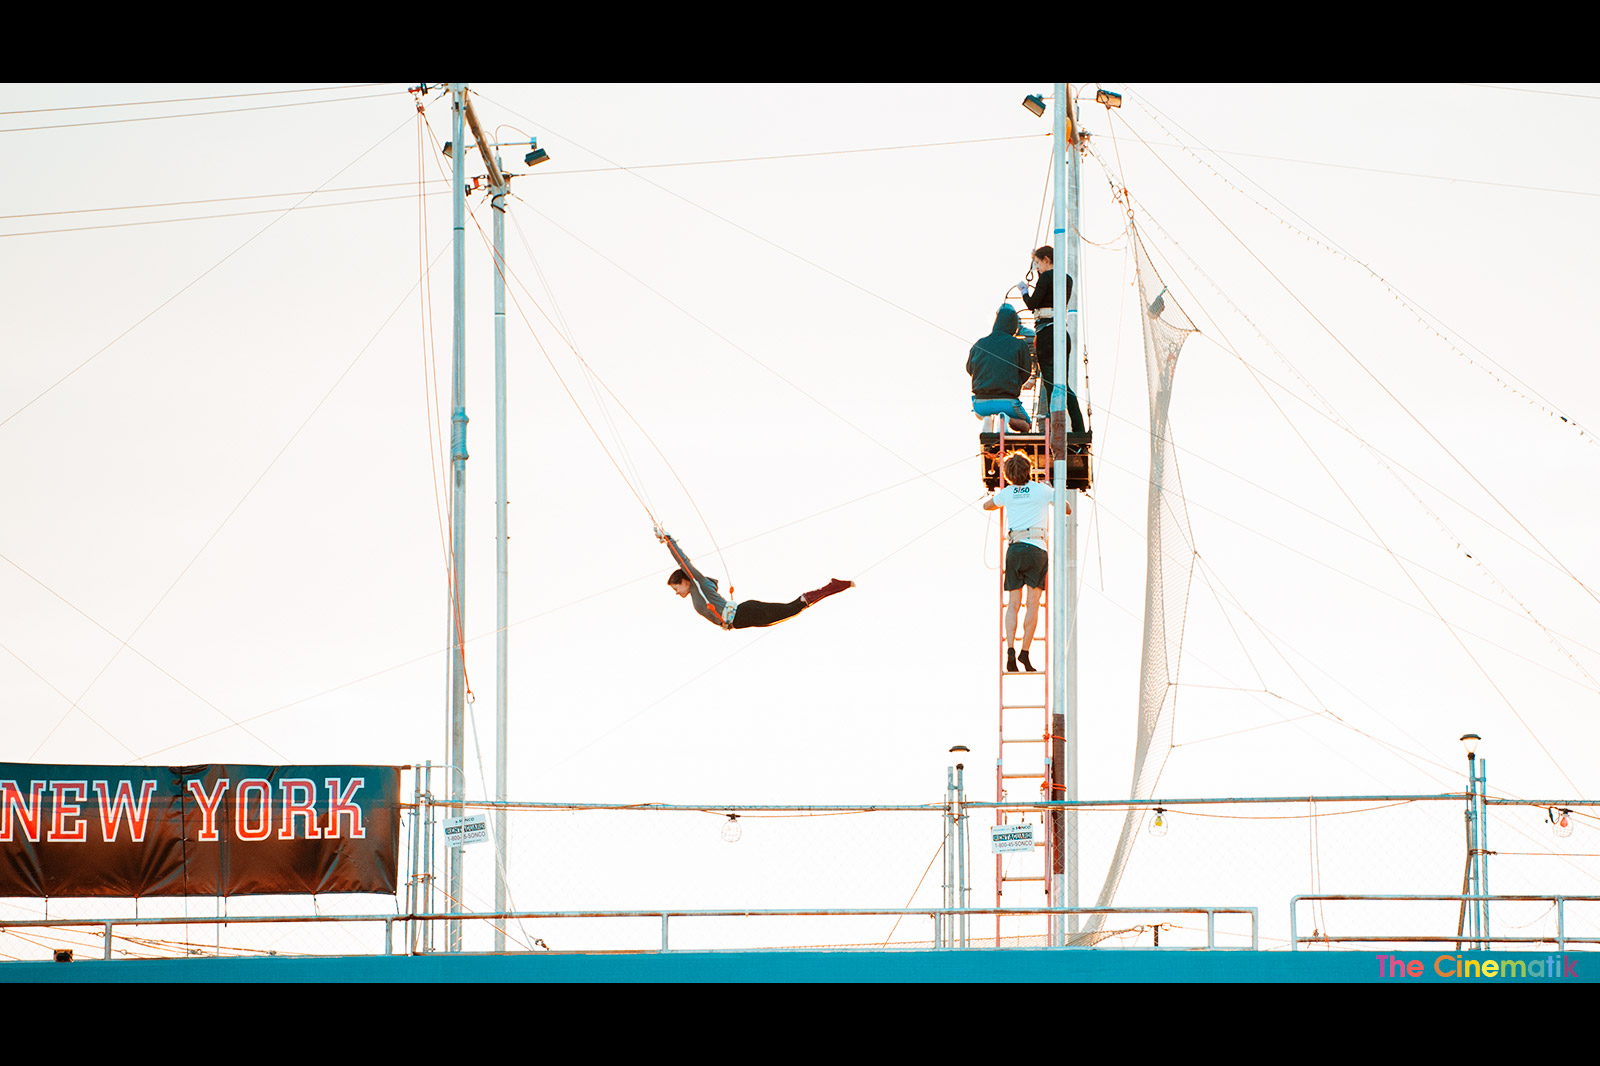 Copy of Girl on a trapeze taking the plunge in New York City Cinematic photography by Kamal Lahmadi / The Cinematik